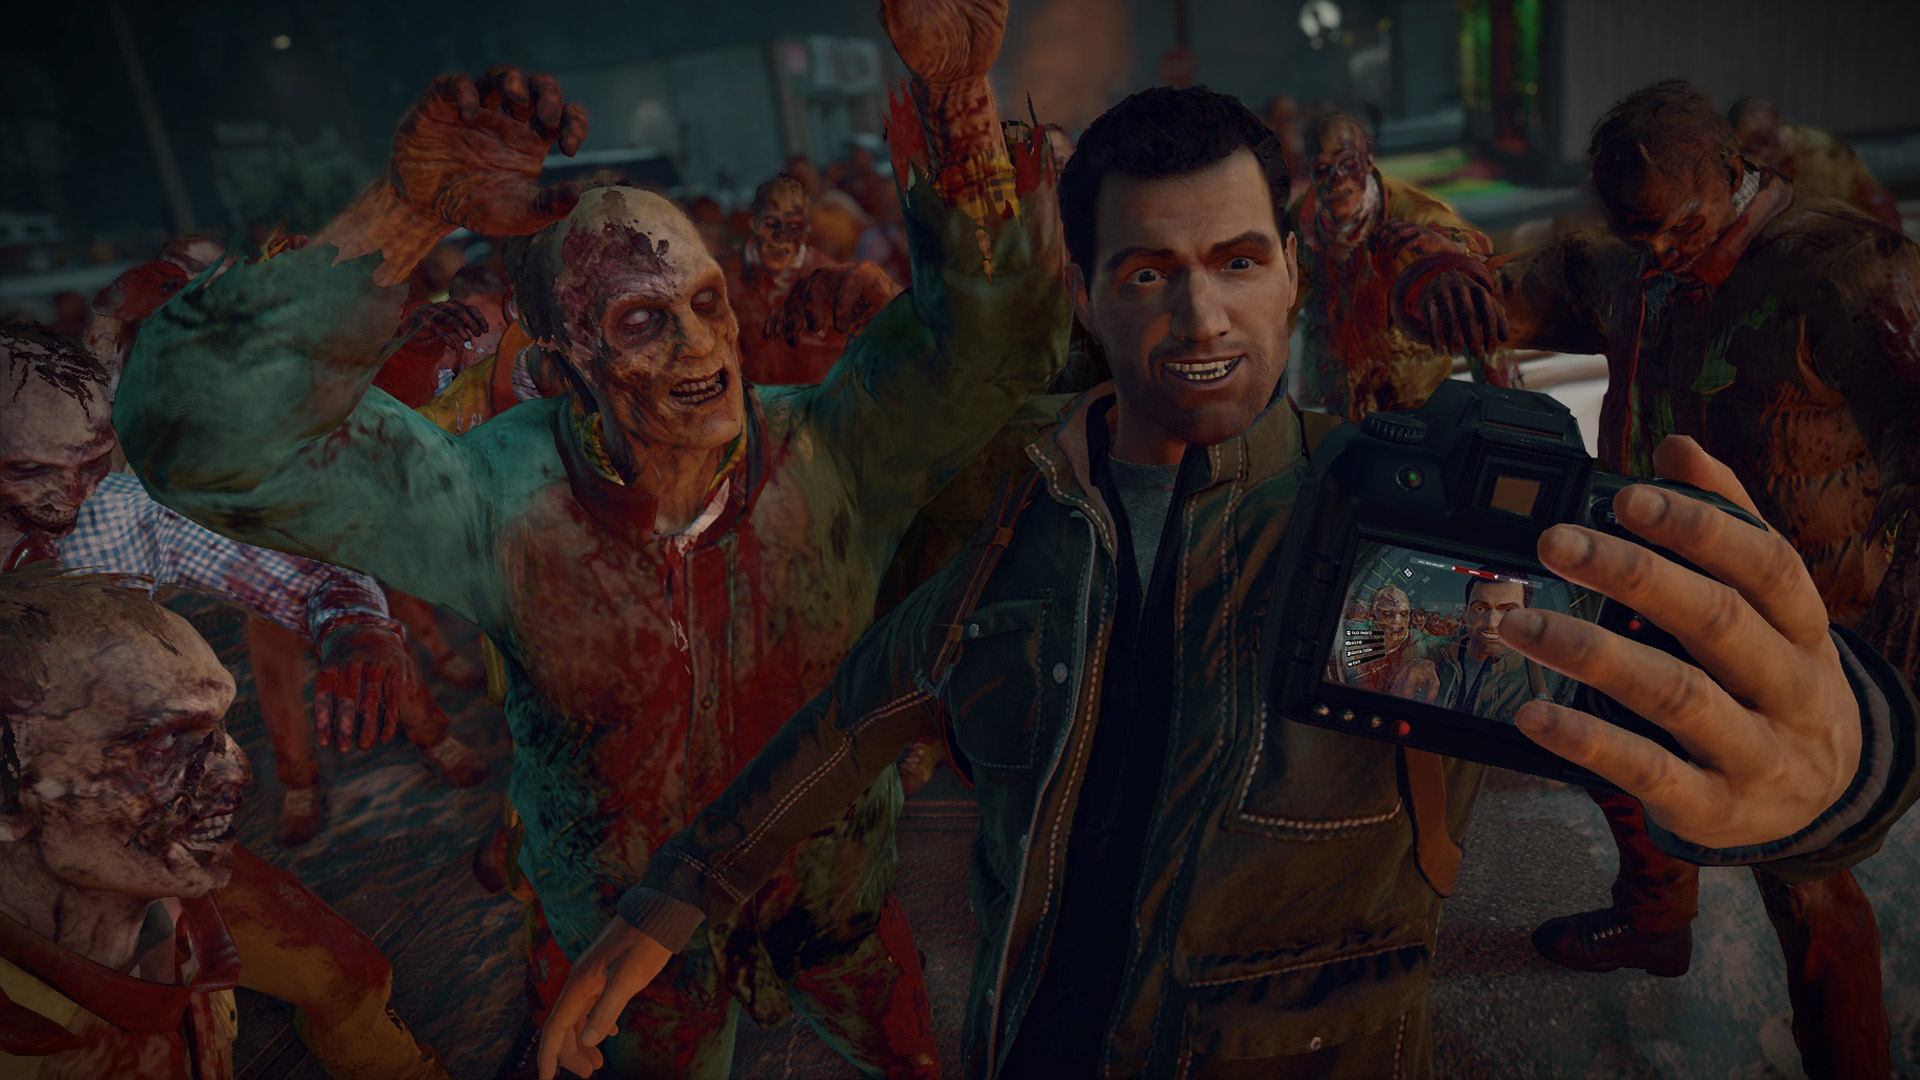 Free Dead Rising 4 Wallpaper in 1920x1080